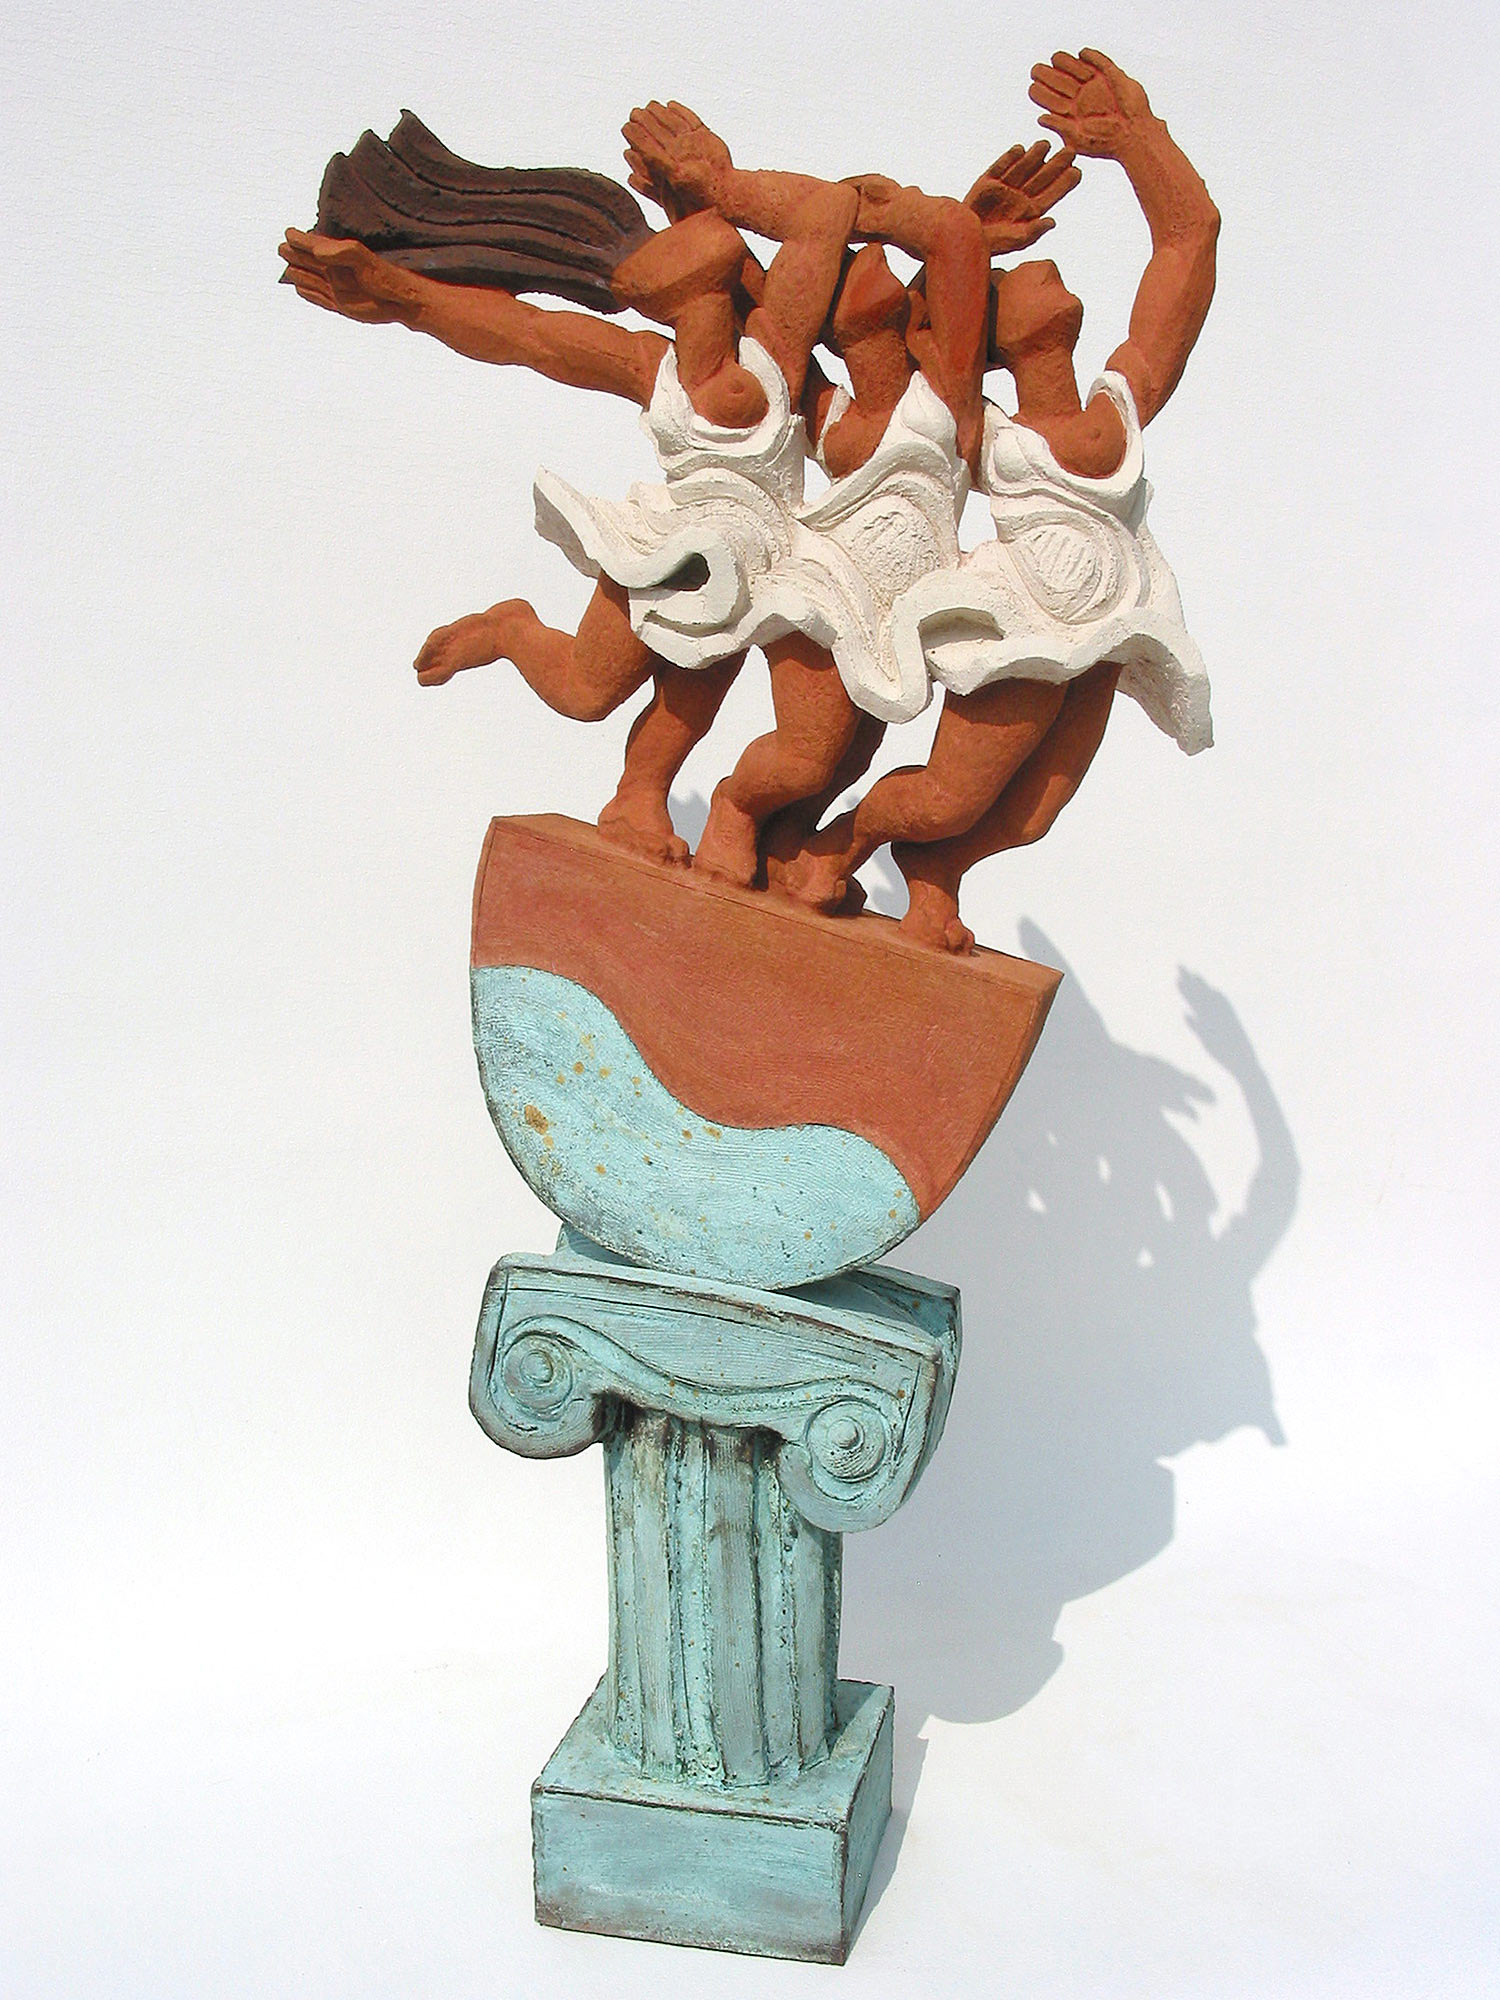 Siren Song  ©  91 cm high x 46 cm wide  Unique  The classical call of temptation in Marilyn Monroe skirts. This piece is bathed in the warm sun of the Mediterranean and references the neoclassical paintings of 'The Bathers' or 'Women Running on the Beach' by Pablo Picasso.